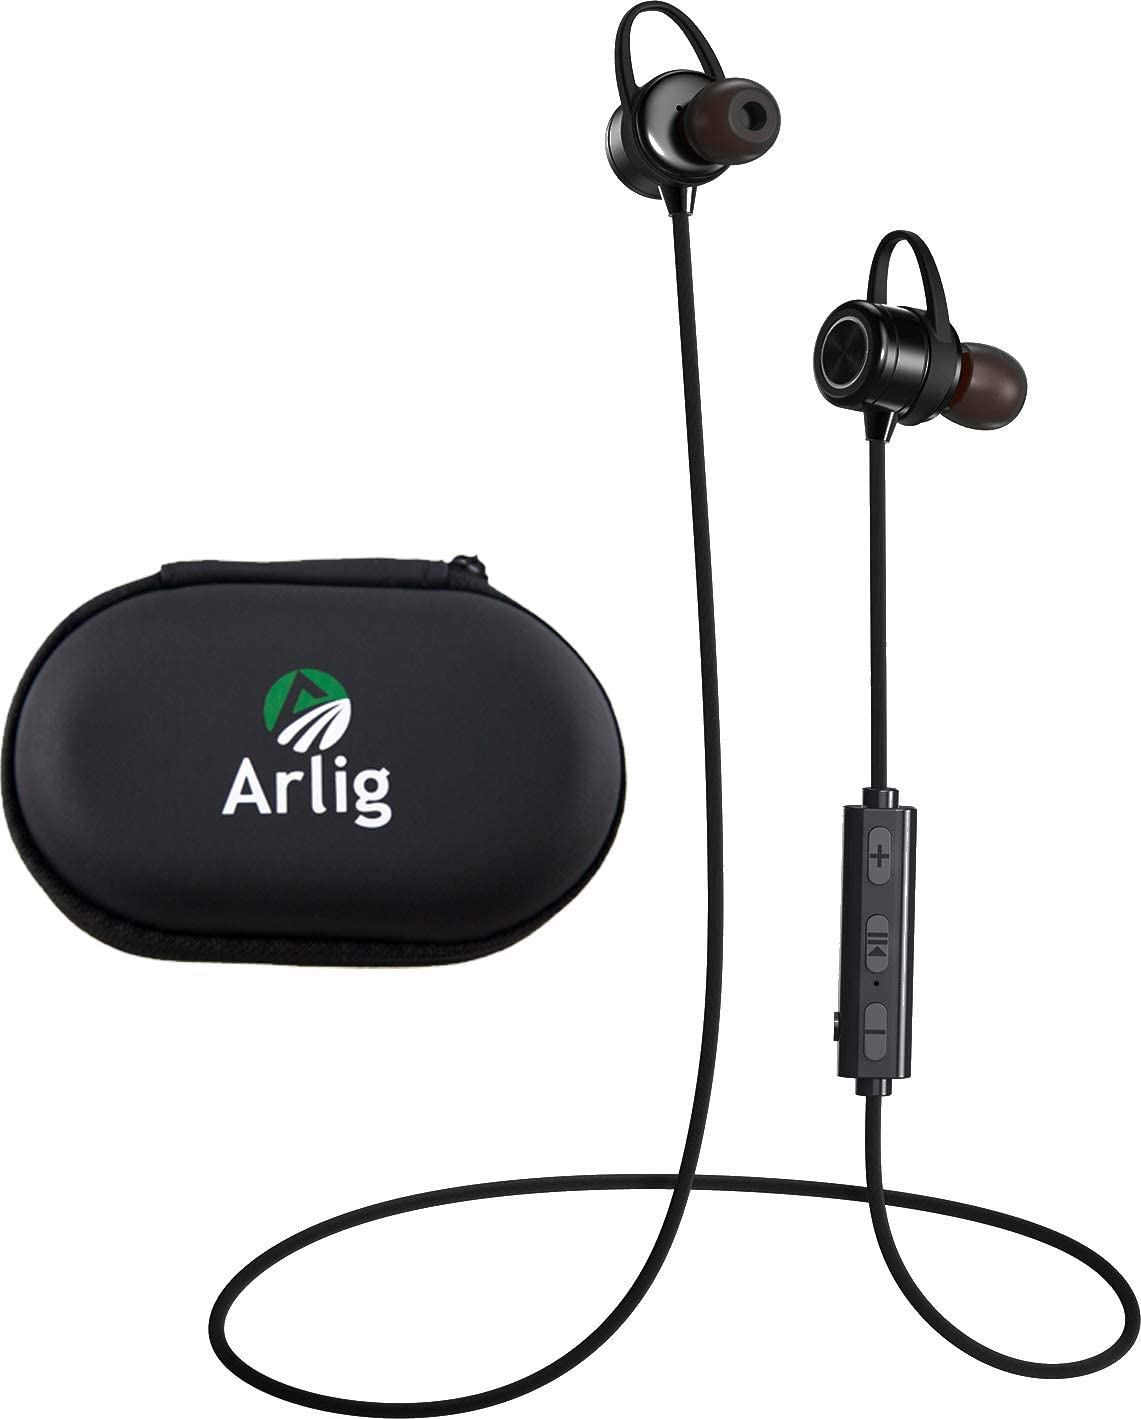 Arlig Wireless Bluetooth Earbuds with Microphone – Waterproof and Sweat-Proof Headphones – Magnetic in-Ear Headset with Noise Cancelling Mic – 9 hr Battery Life – Quick Charging – Freedom Sport Pro X1